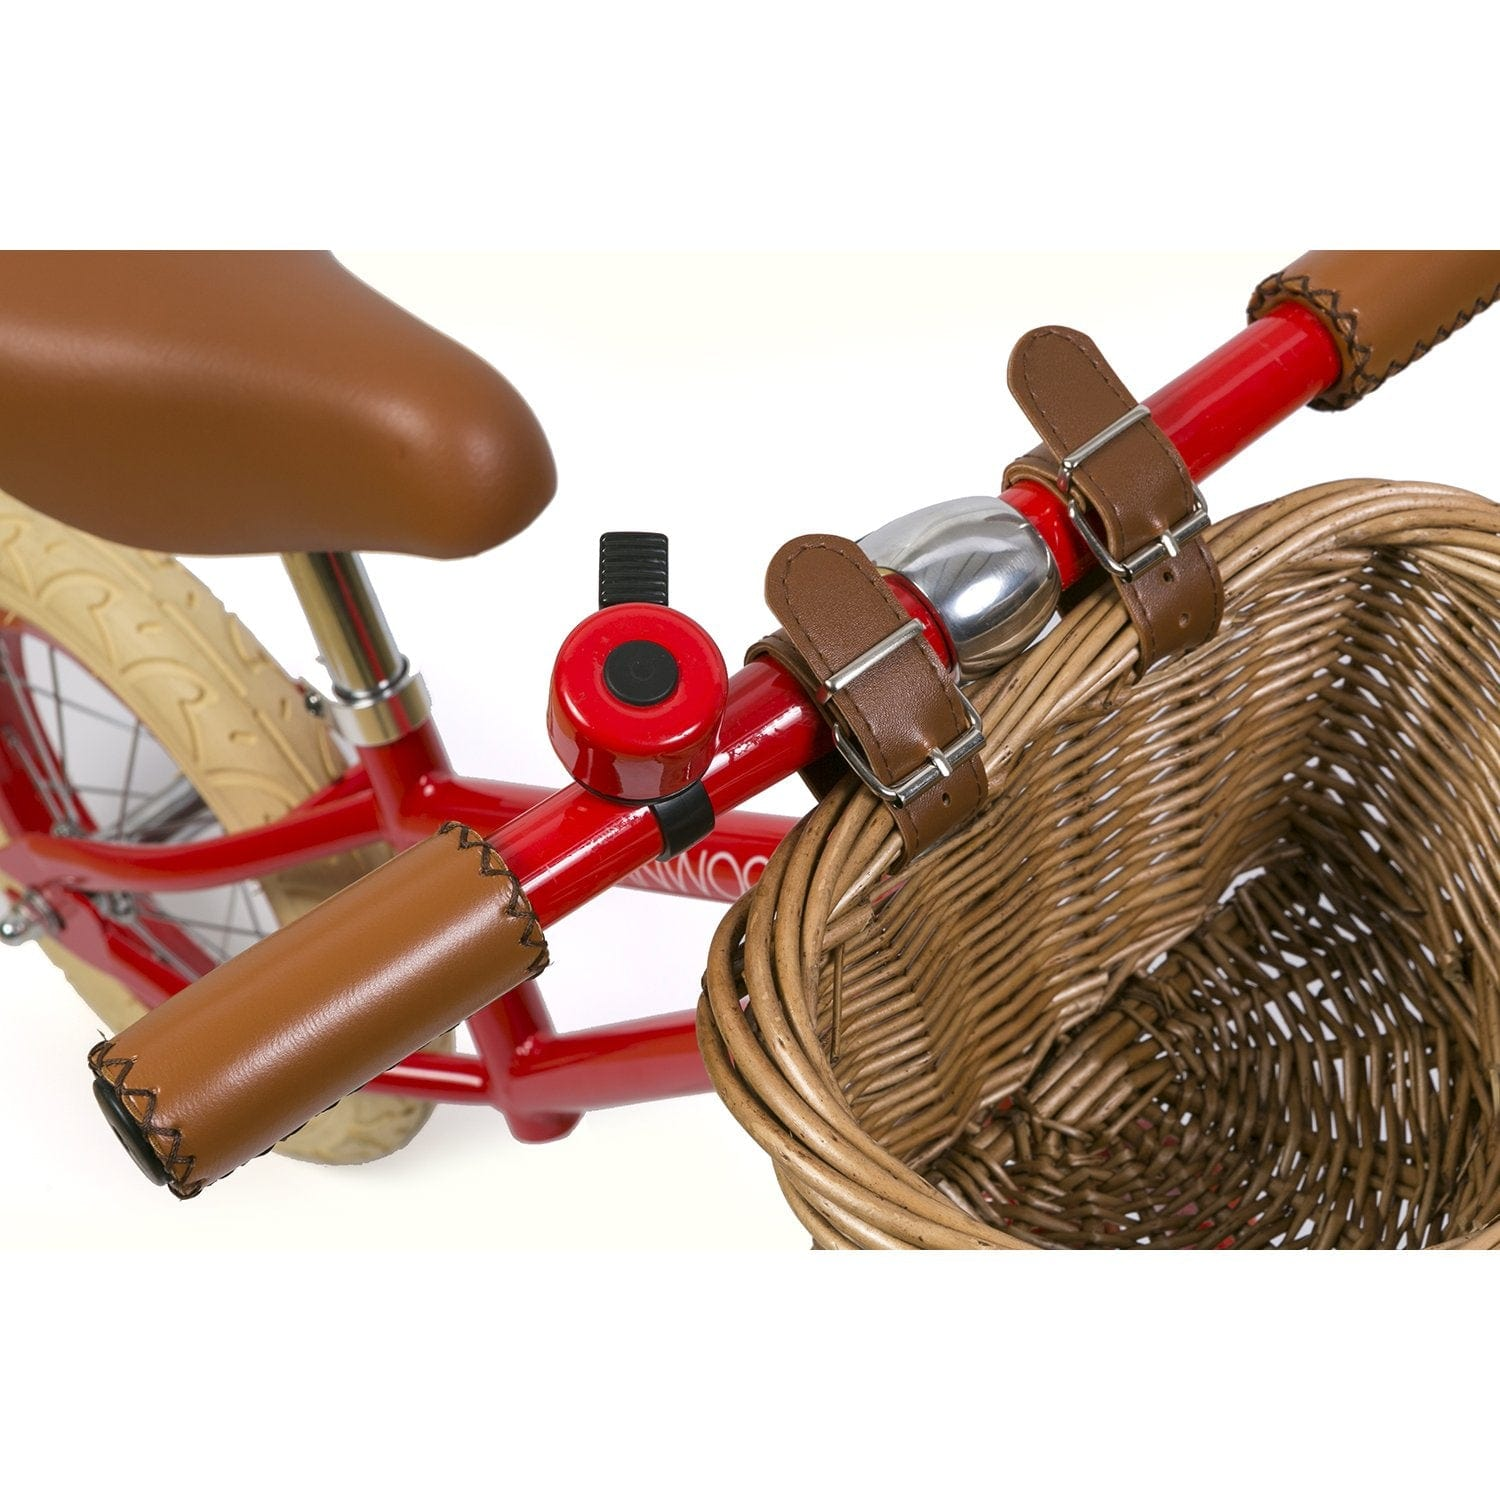 BANWOOD FIRST GO BALANCE BIKE, RED - Hello Little Birdie